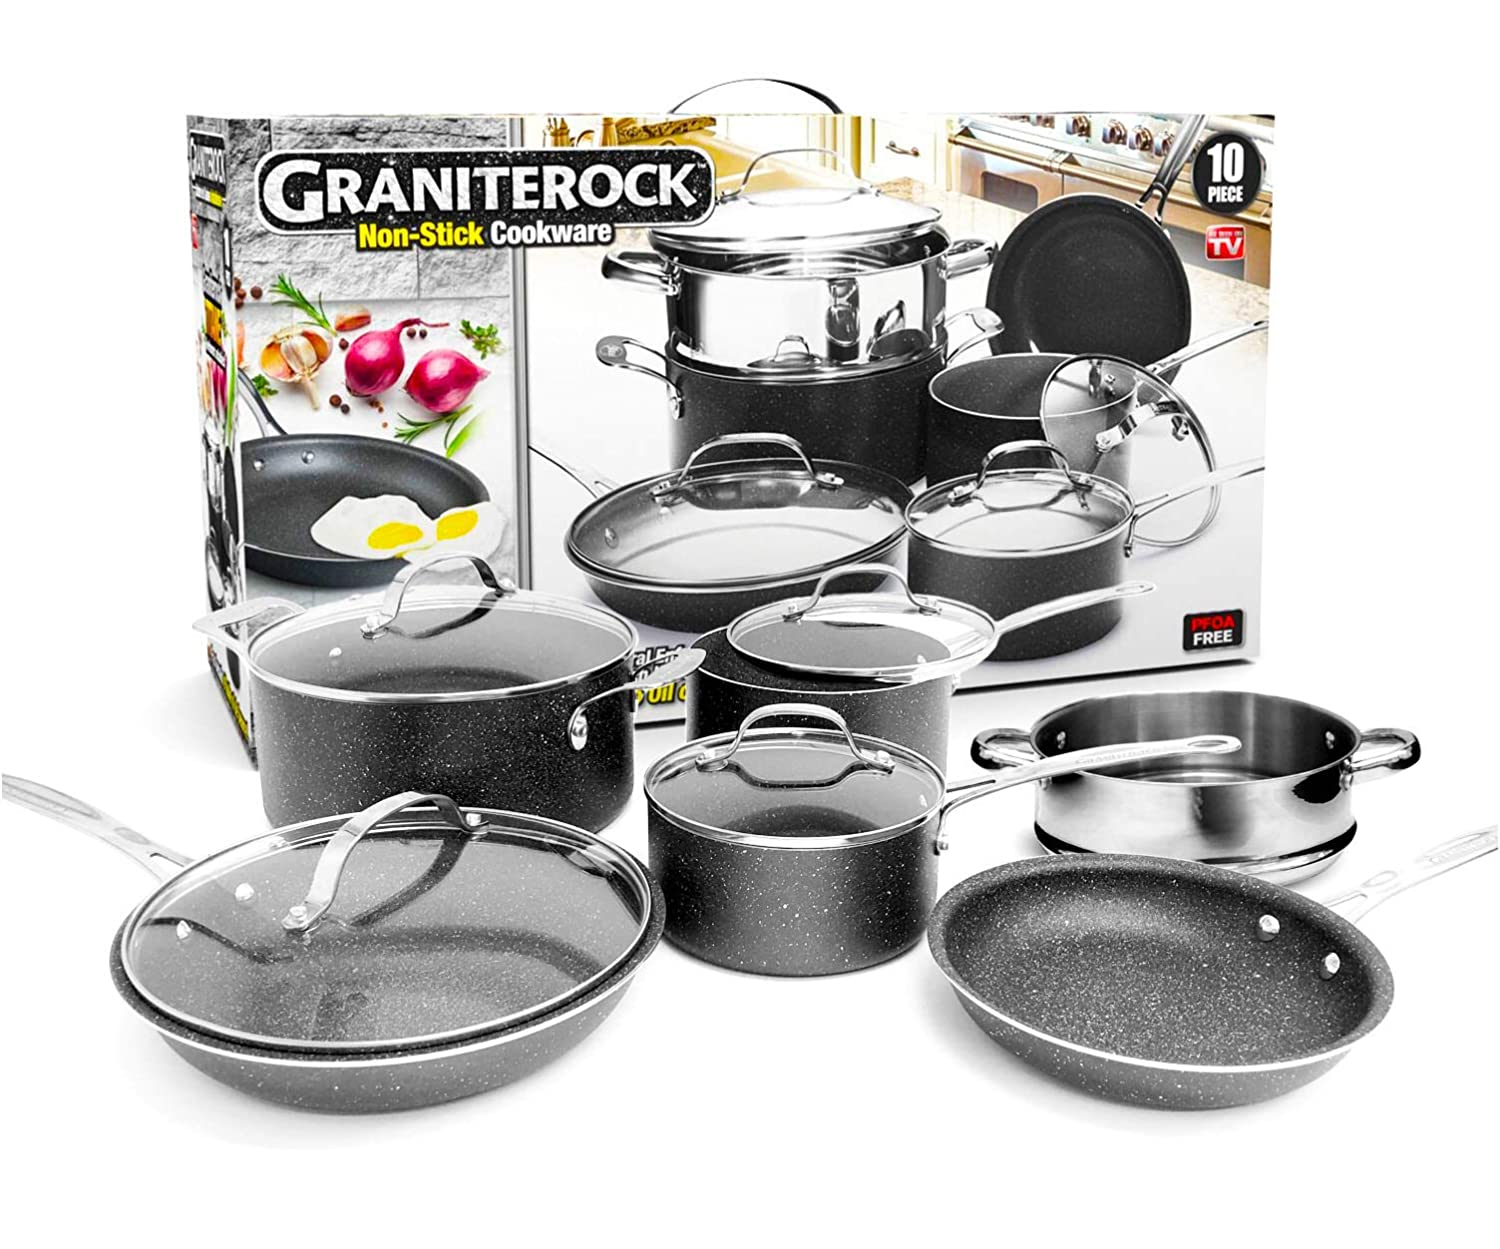 GRANITEROCK 10 Piece Cookware Set, Scratch-Proof, Nonstick Granite-coated, PFOA-Free As Seen On TV Emson